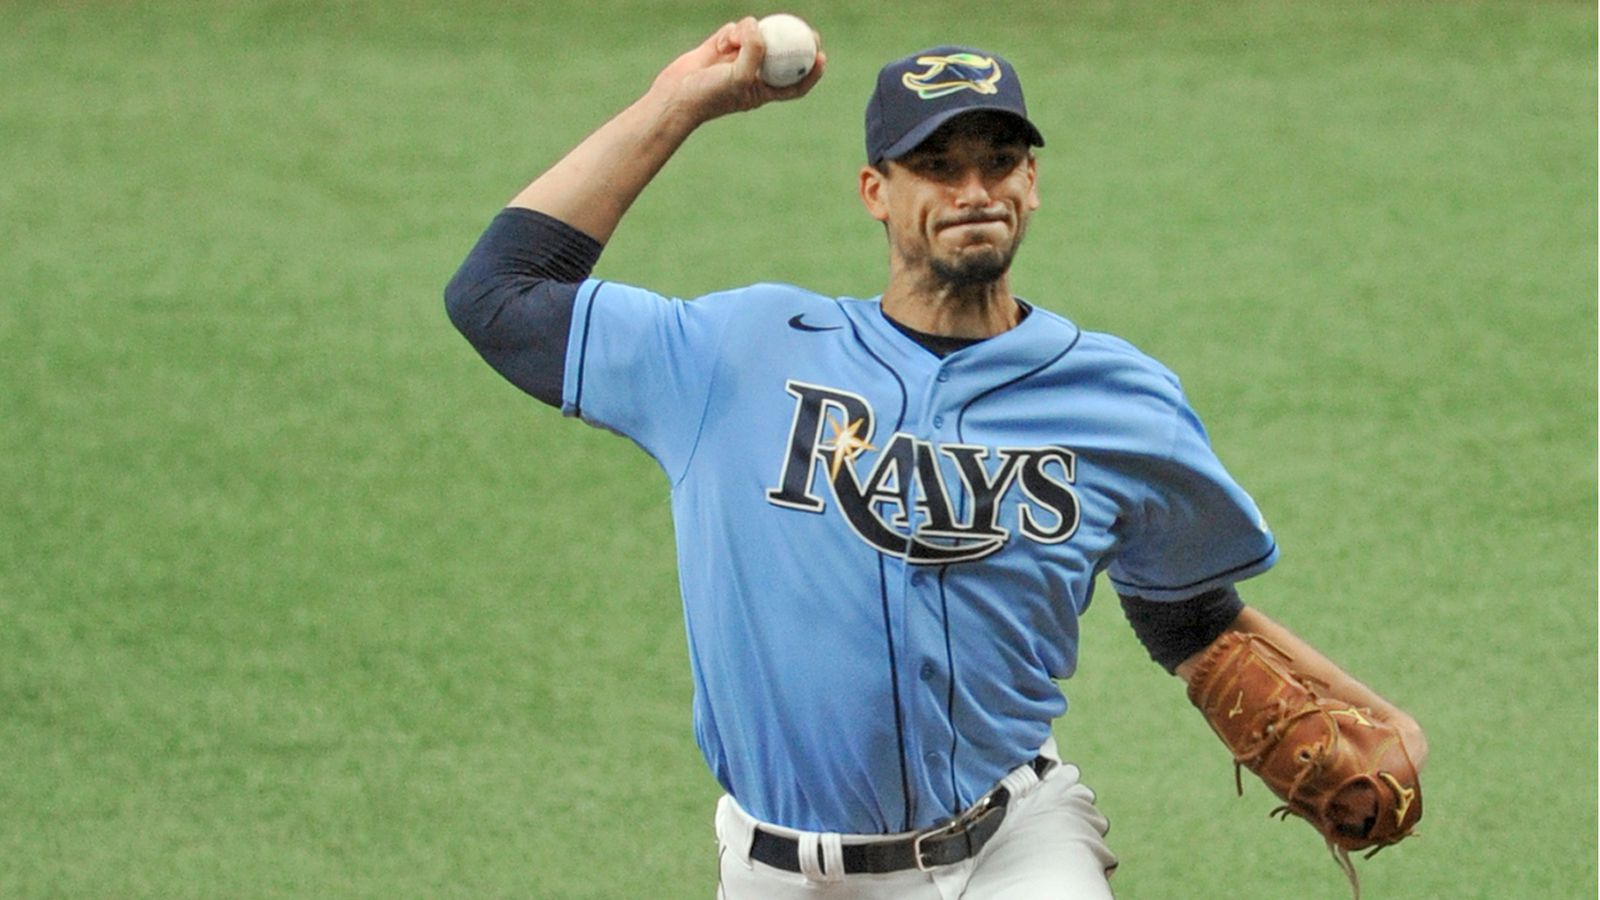 rays place charlie morton on injured list with shoulder inflammation rays place charlie morton on injured